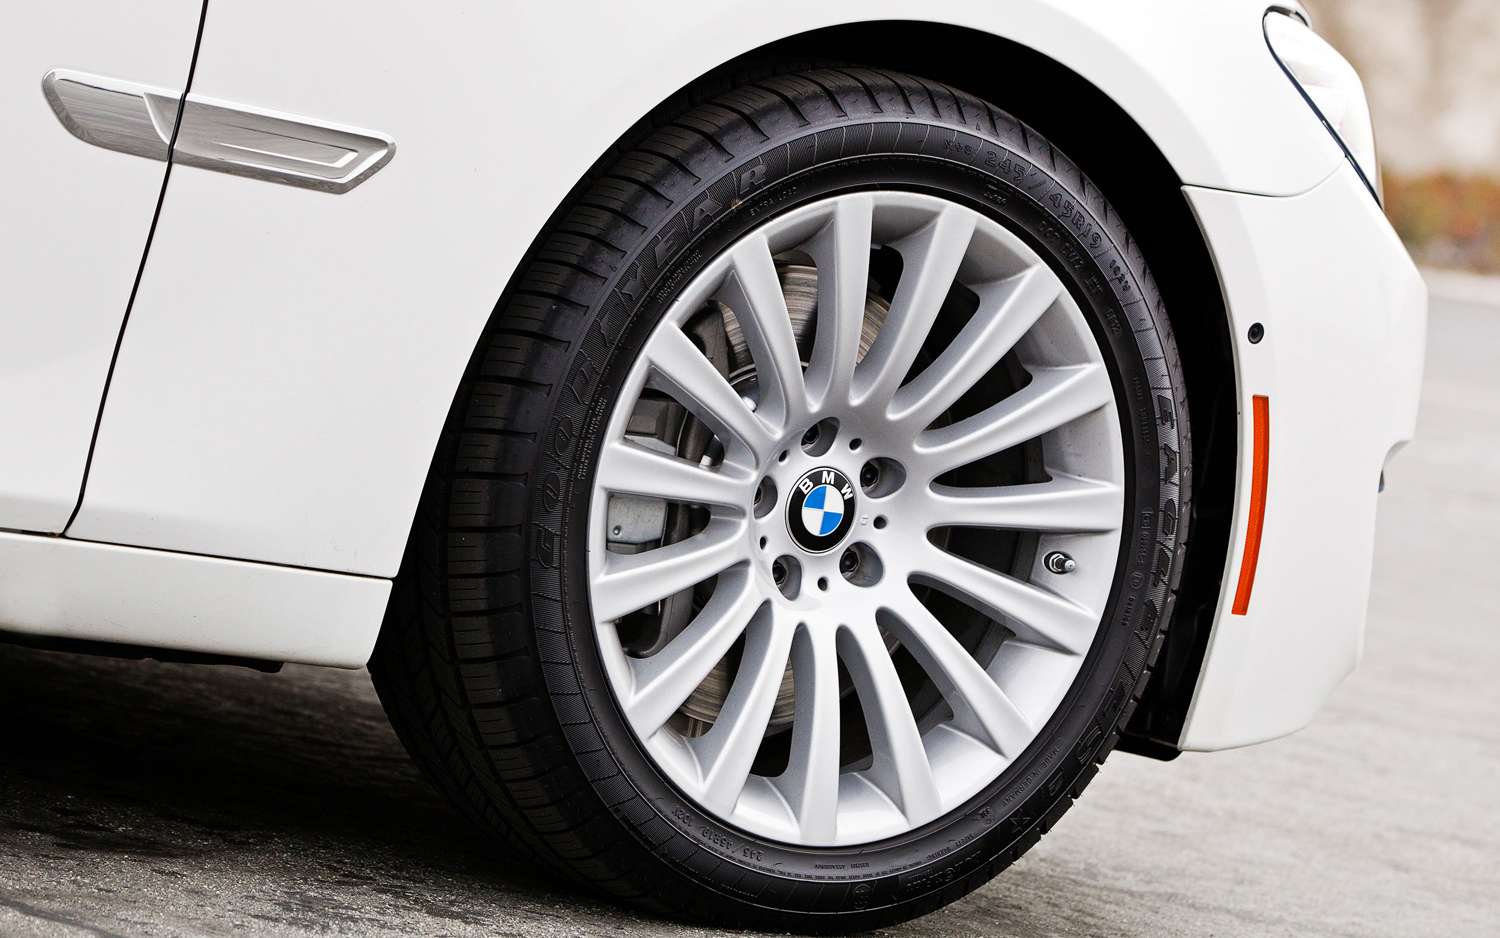 7. Bmw Tyres 1